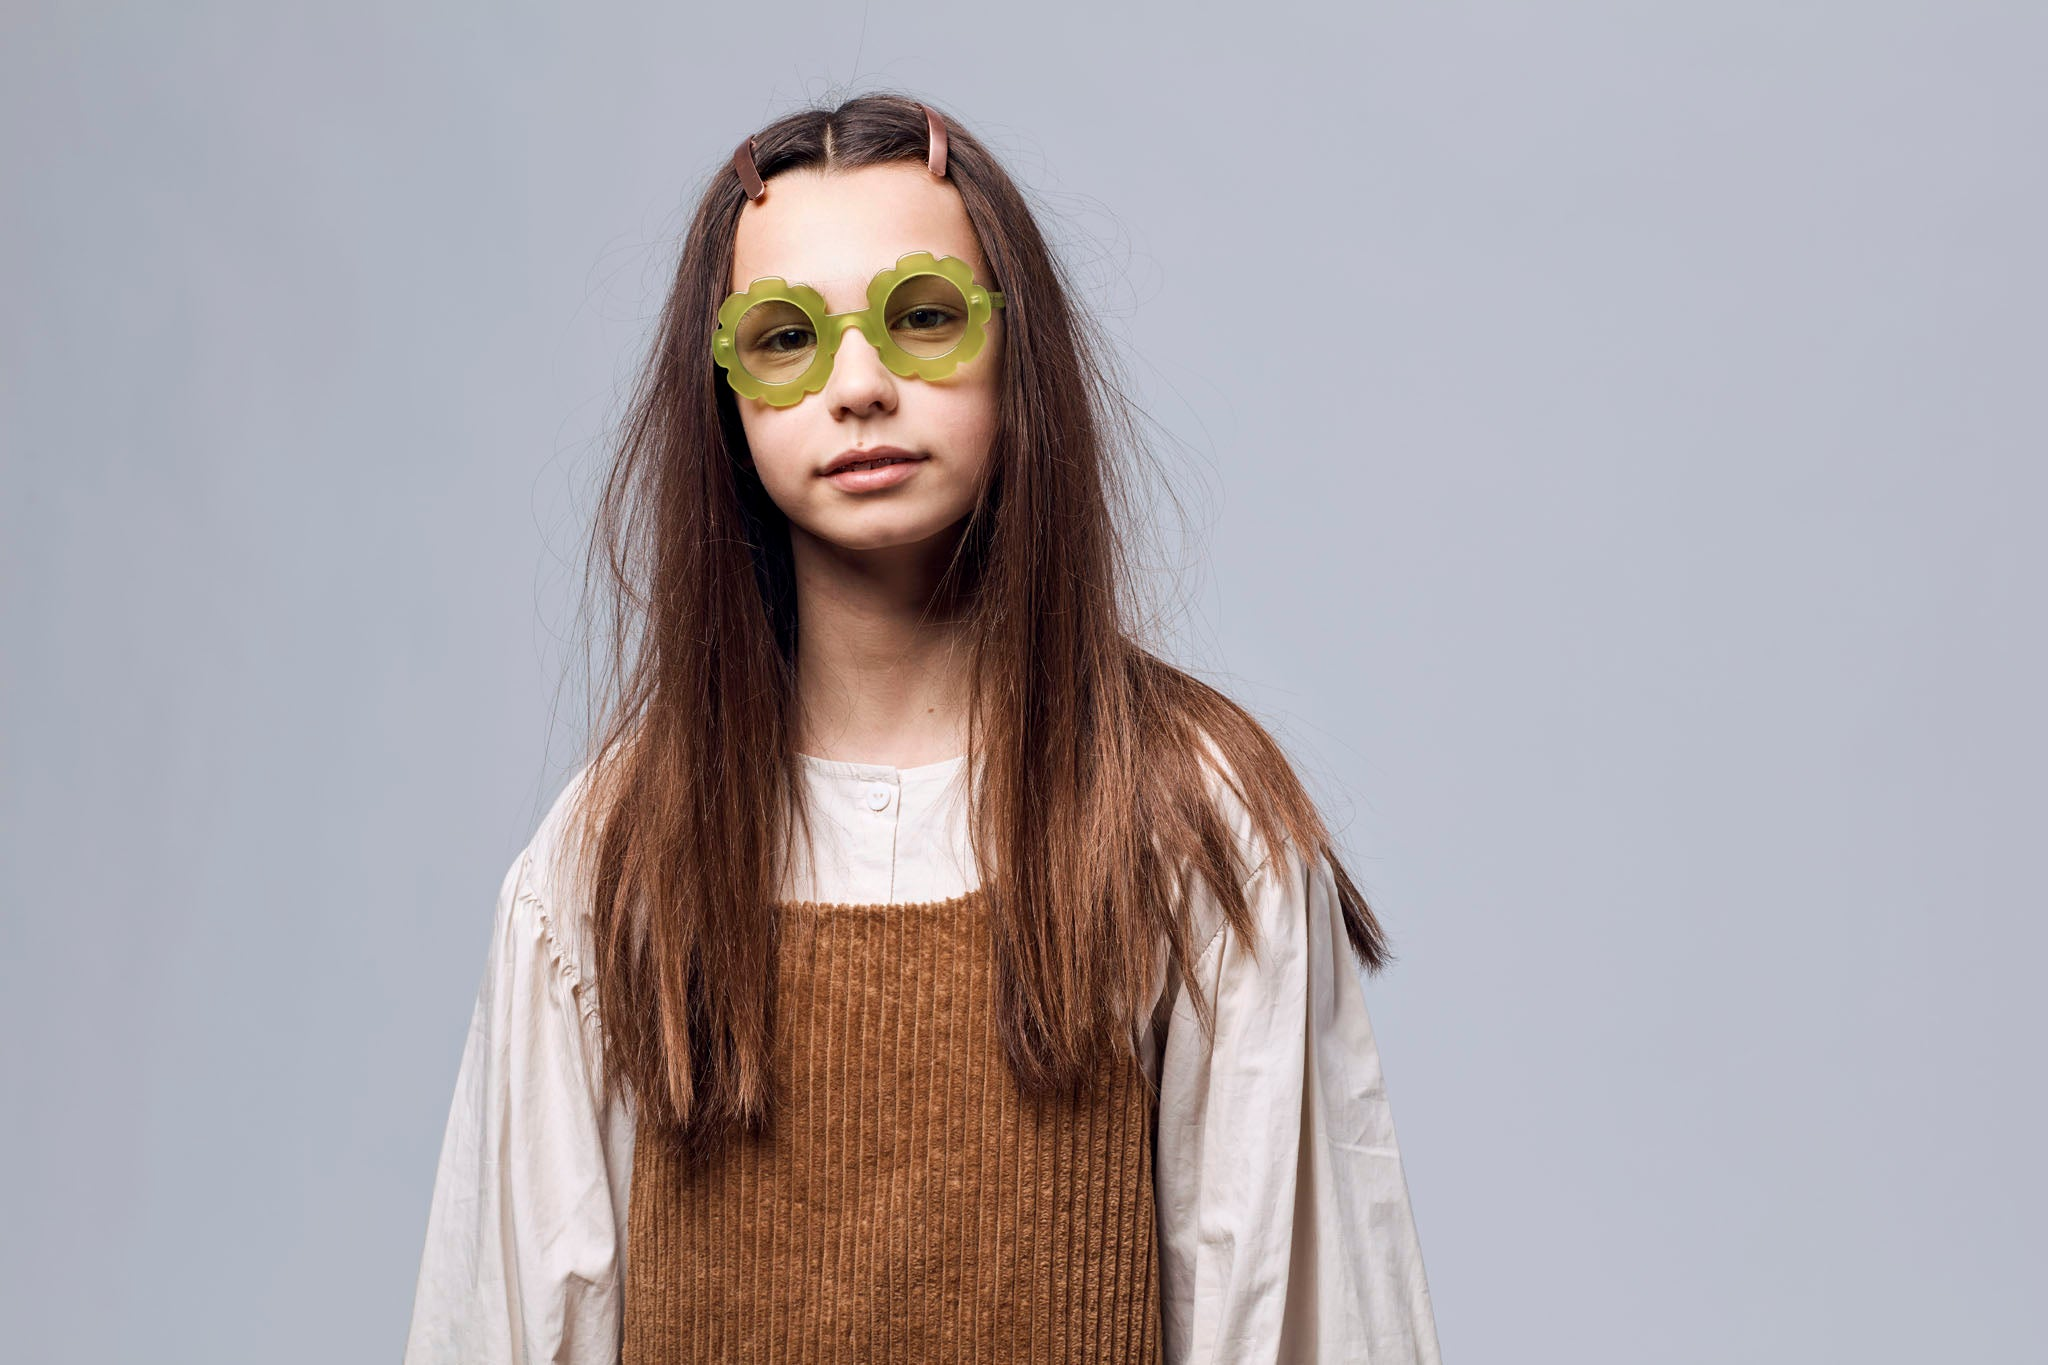 Sons_and_Daughters_Eyewear_Campaign_2019_Childrens_Kids_Sunglasses_Pixie